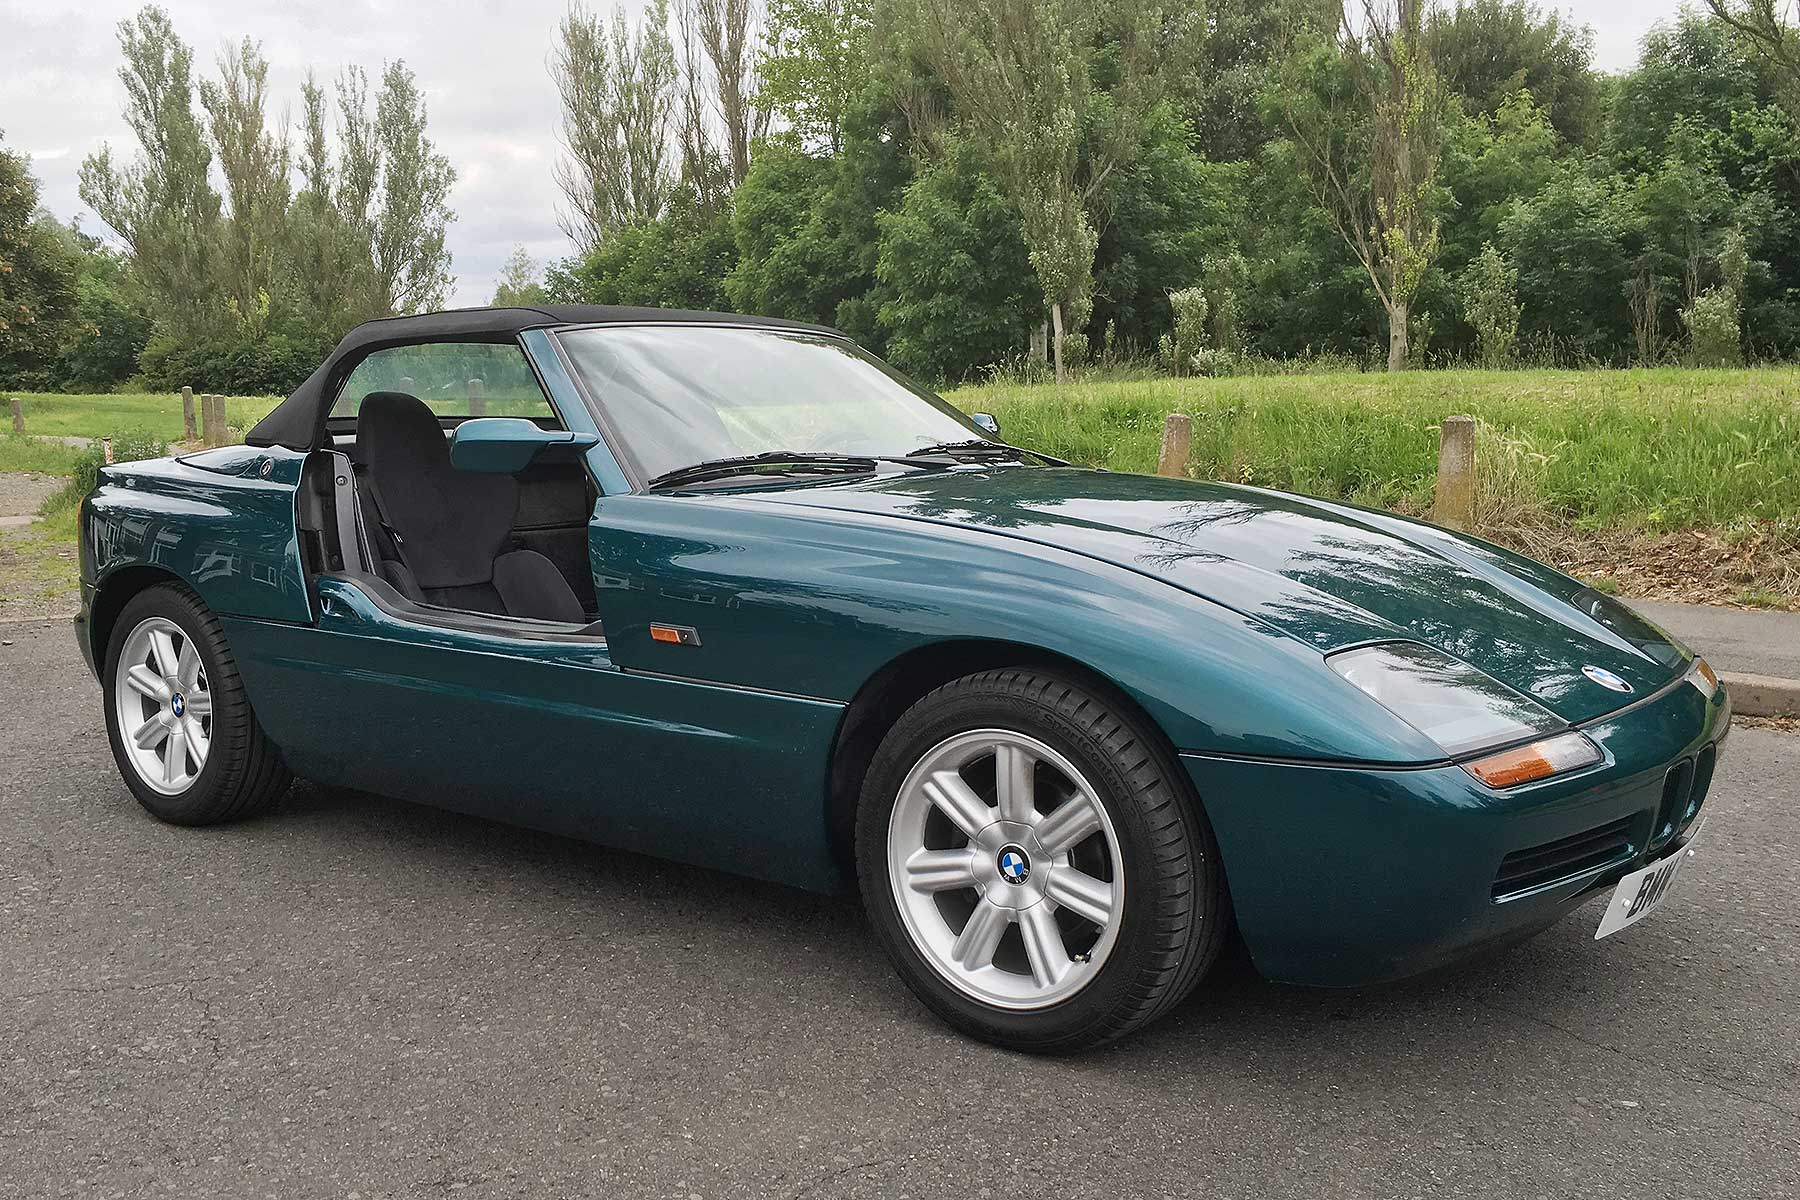 BMW Z1: Goodwood Retro Road Test special | Motoring Research